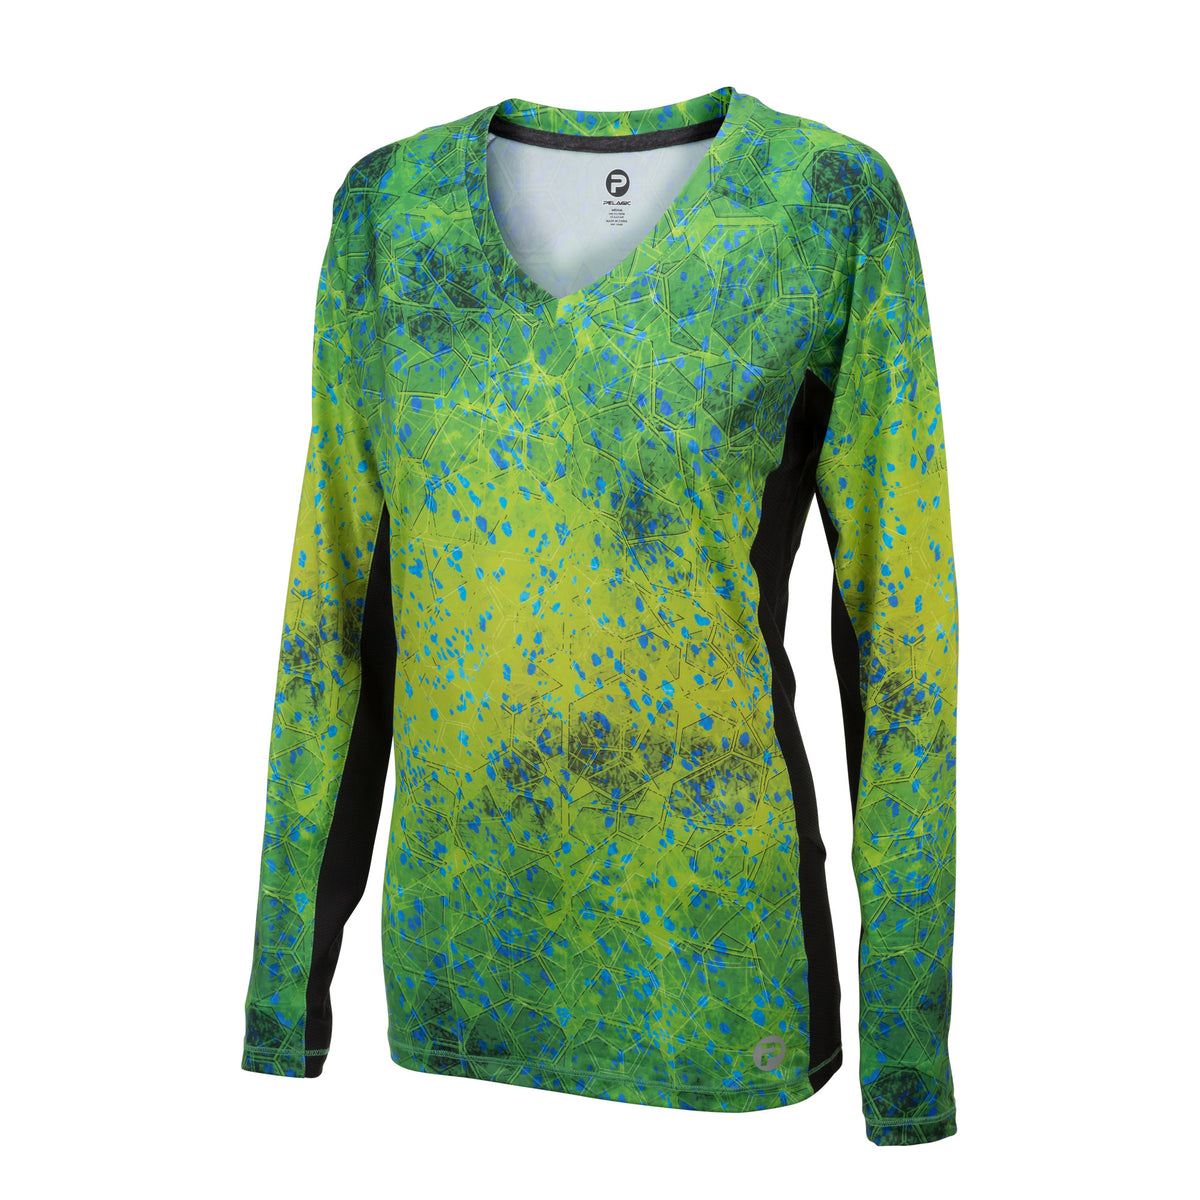 Solar Pro Long Sleeve UPF Shirt Big Image - 1